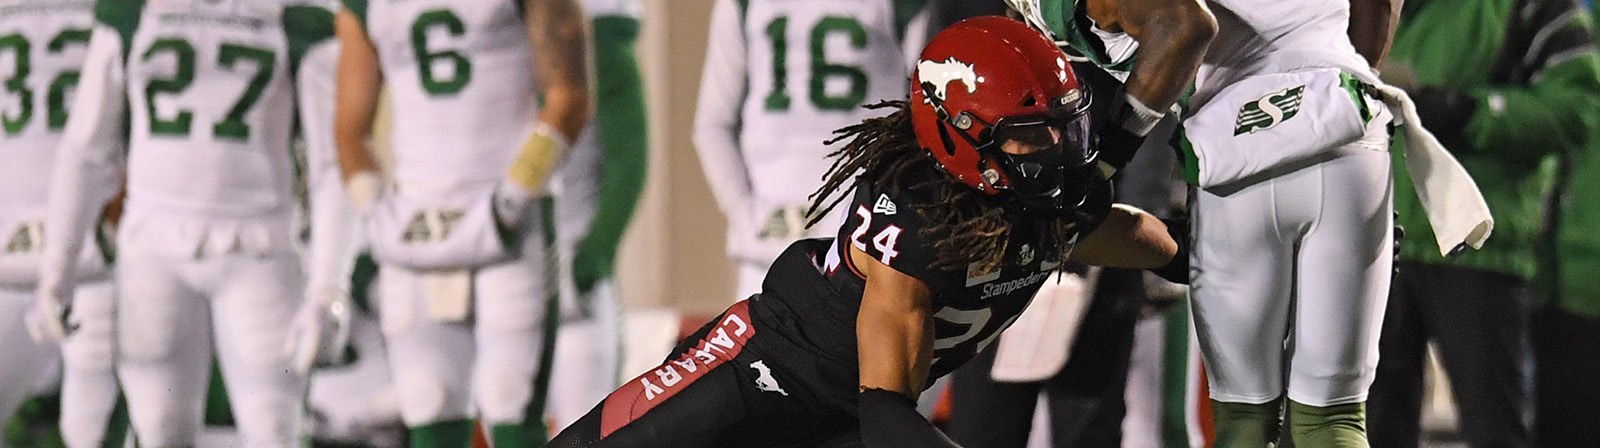 "GILBERT: ""IT FEELS AMAZING"" - Calgary Stampeders"